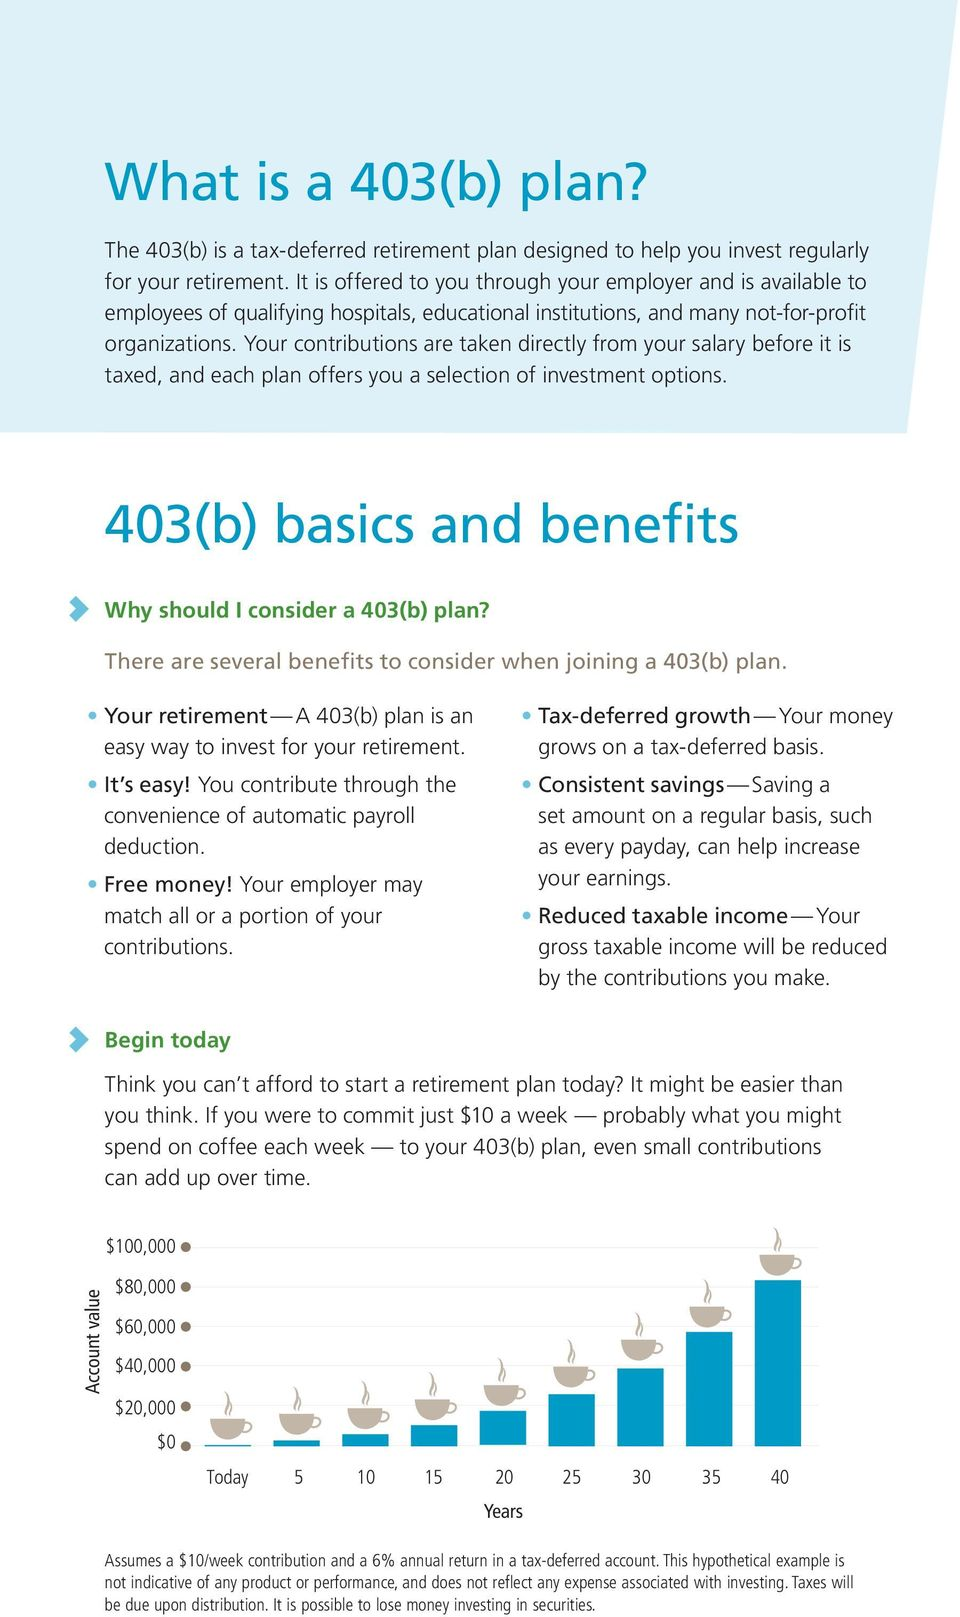 Your contributions are taken directly from your salary before it is taxed, and each plan offers you a selection of investment options. 403(b) basics and benefits Why should I consider a 403(b) plan?